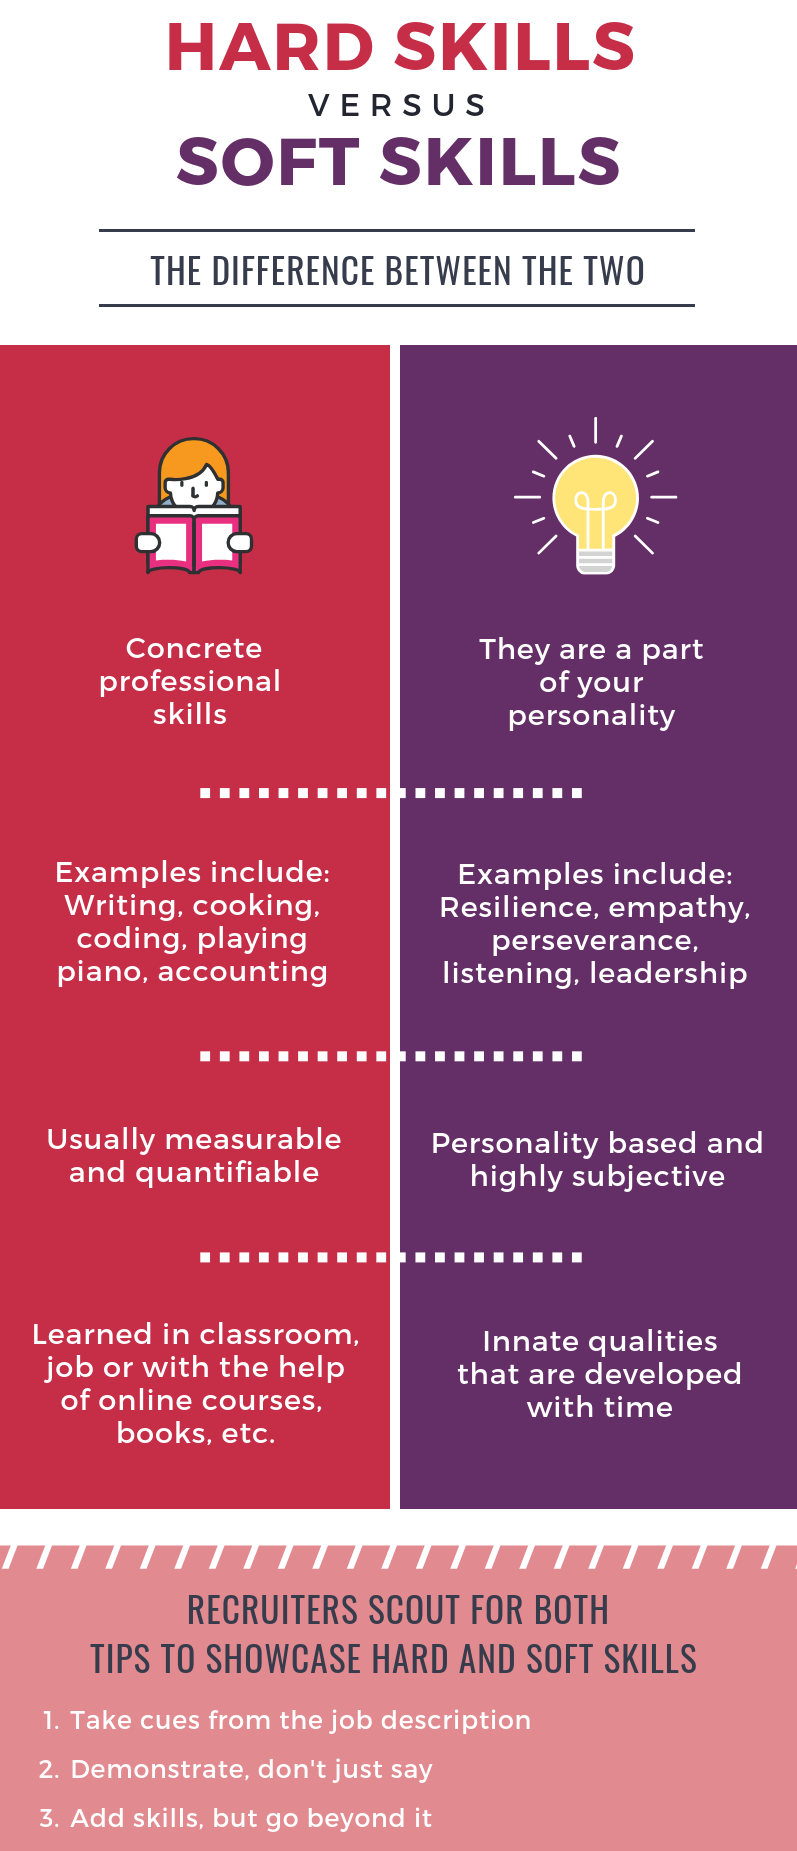 What Is The Difference Between Hard Skills And Soft Skills